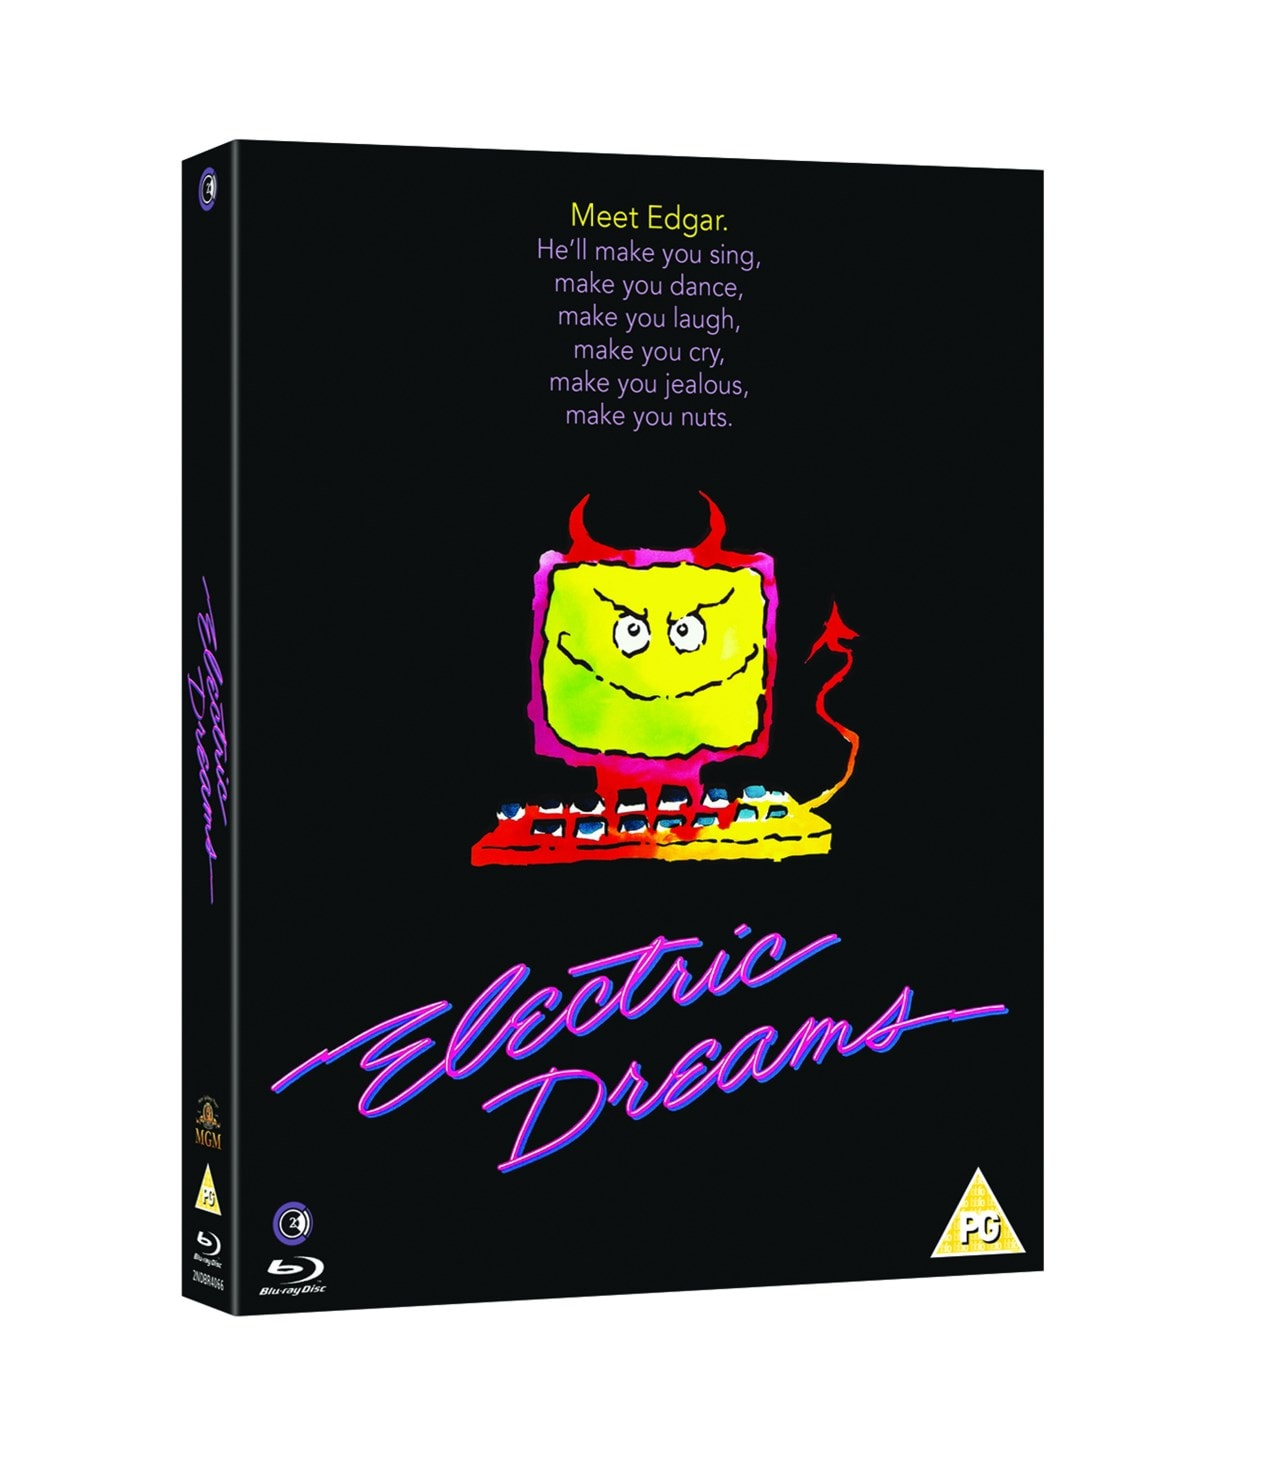 Electric Dreams - 2